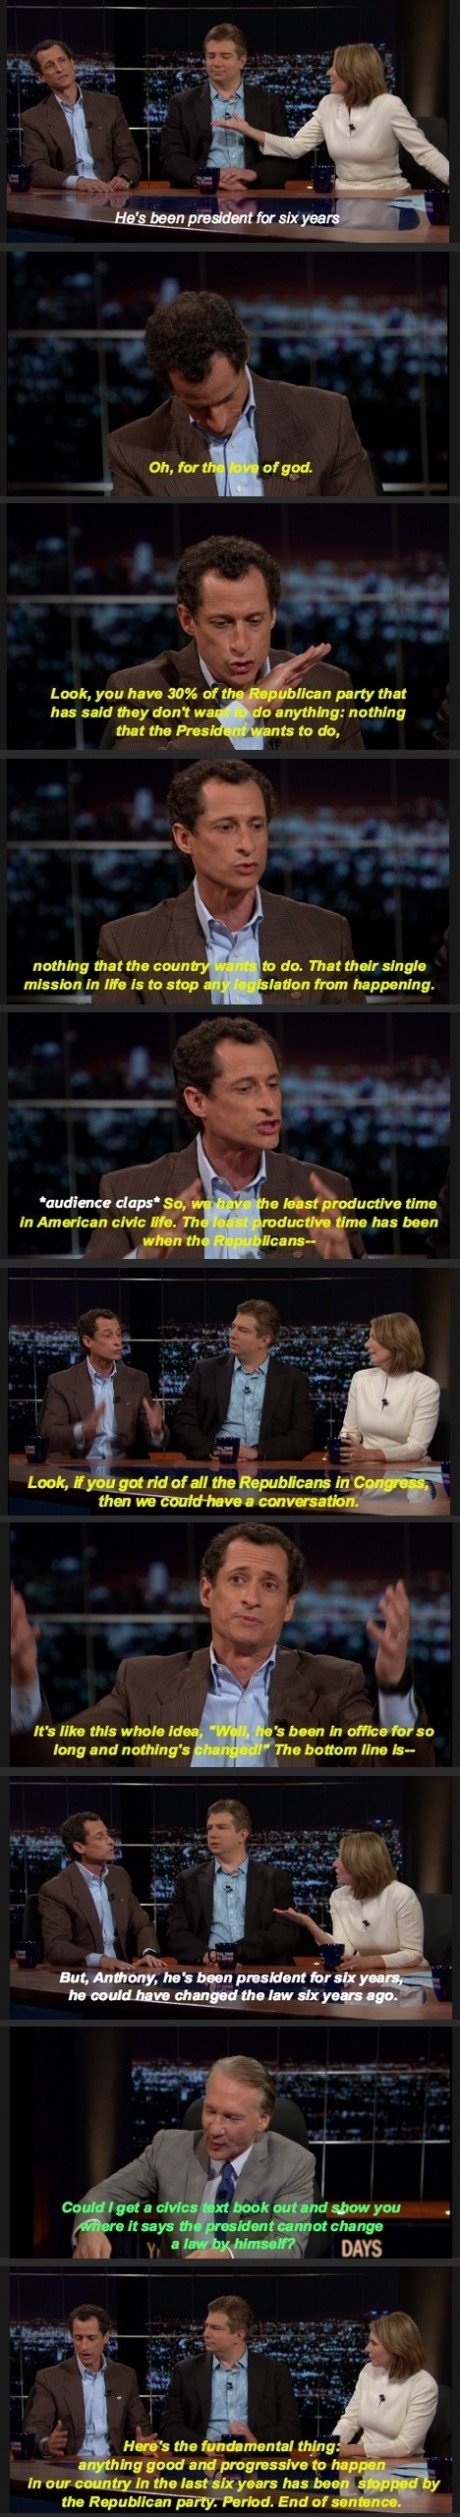 Weiner going off on the Republican Party